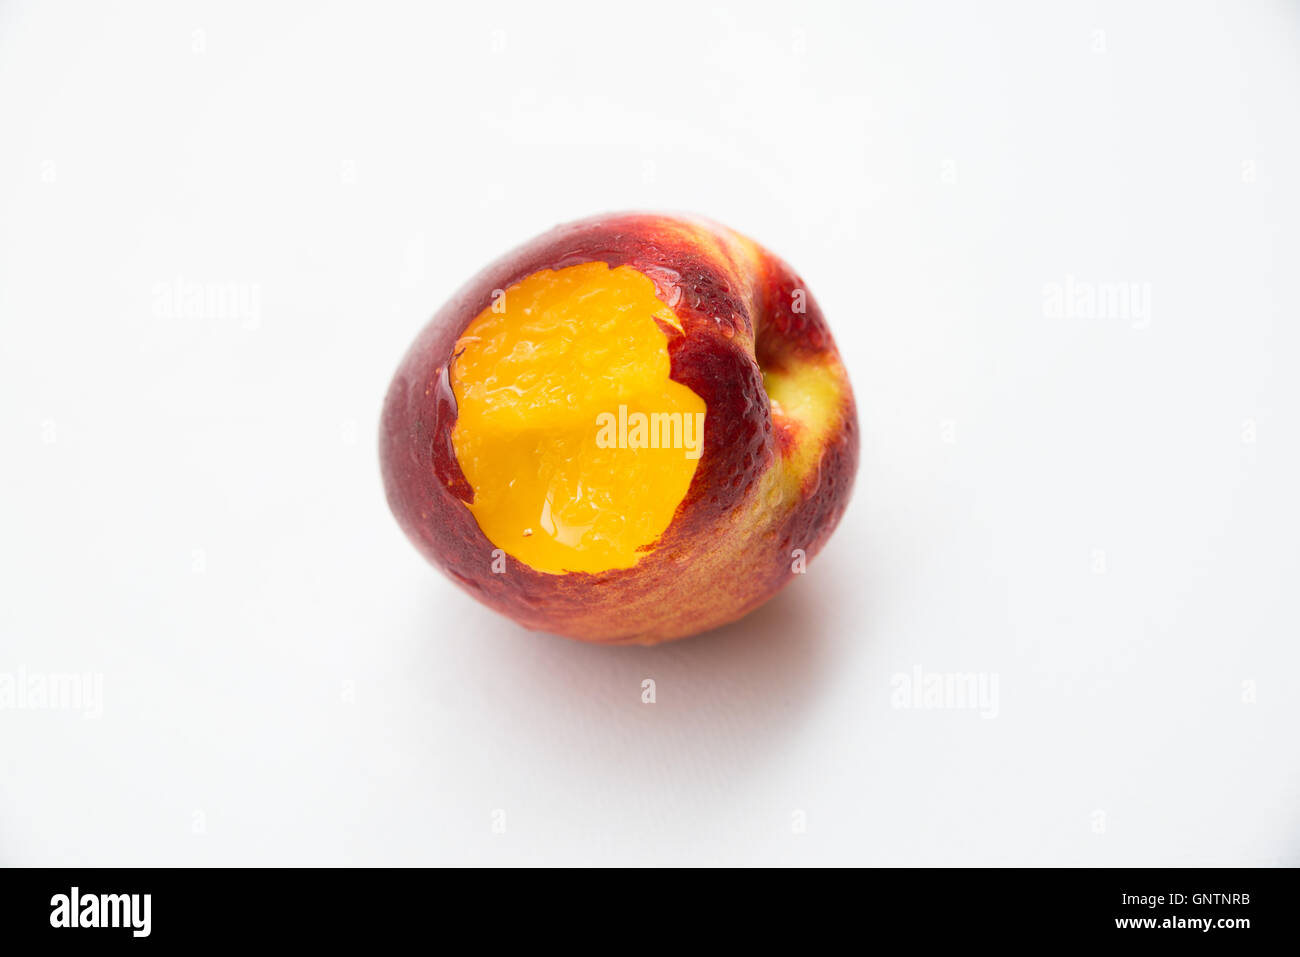 Bitten peach - Stock Image